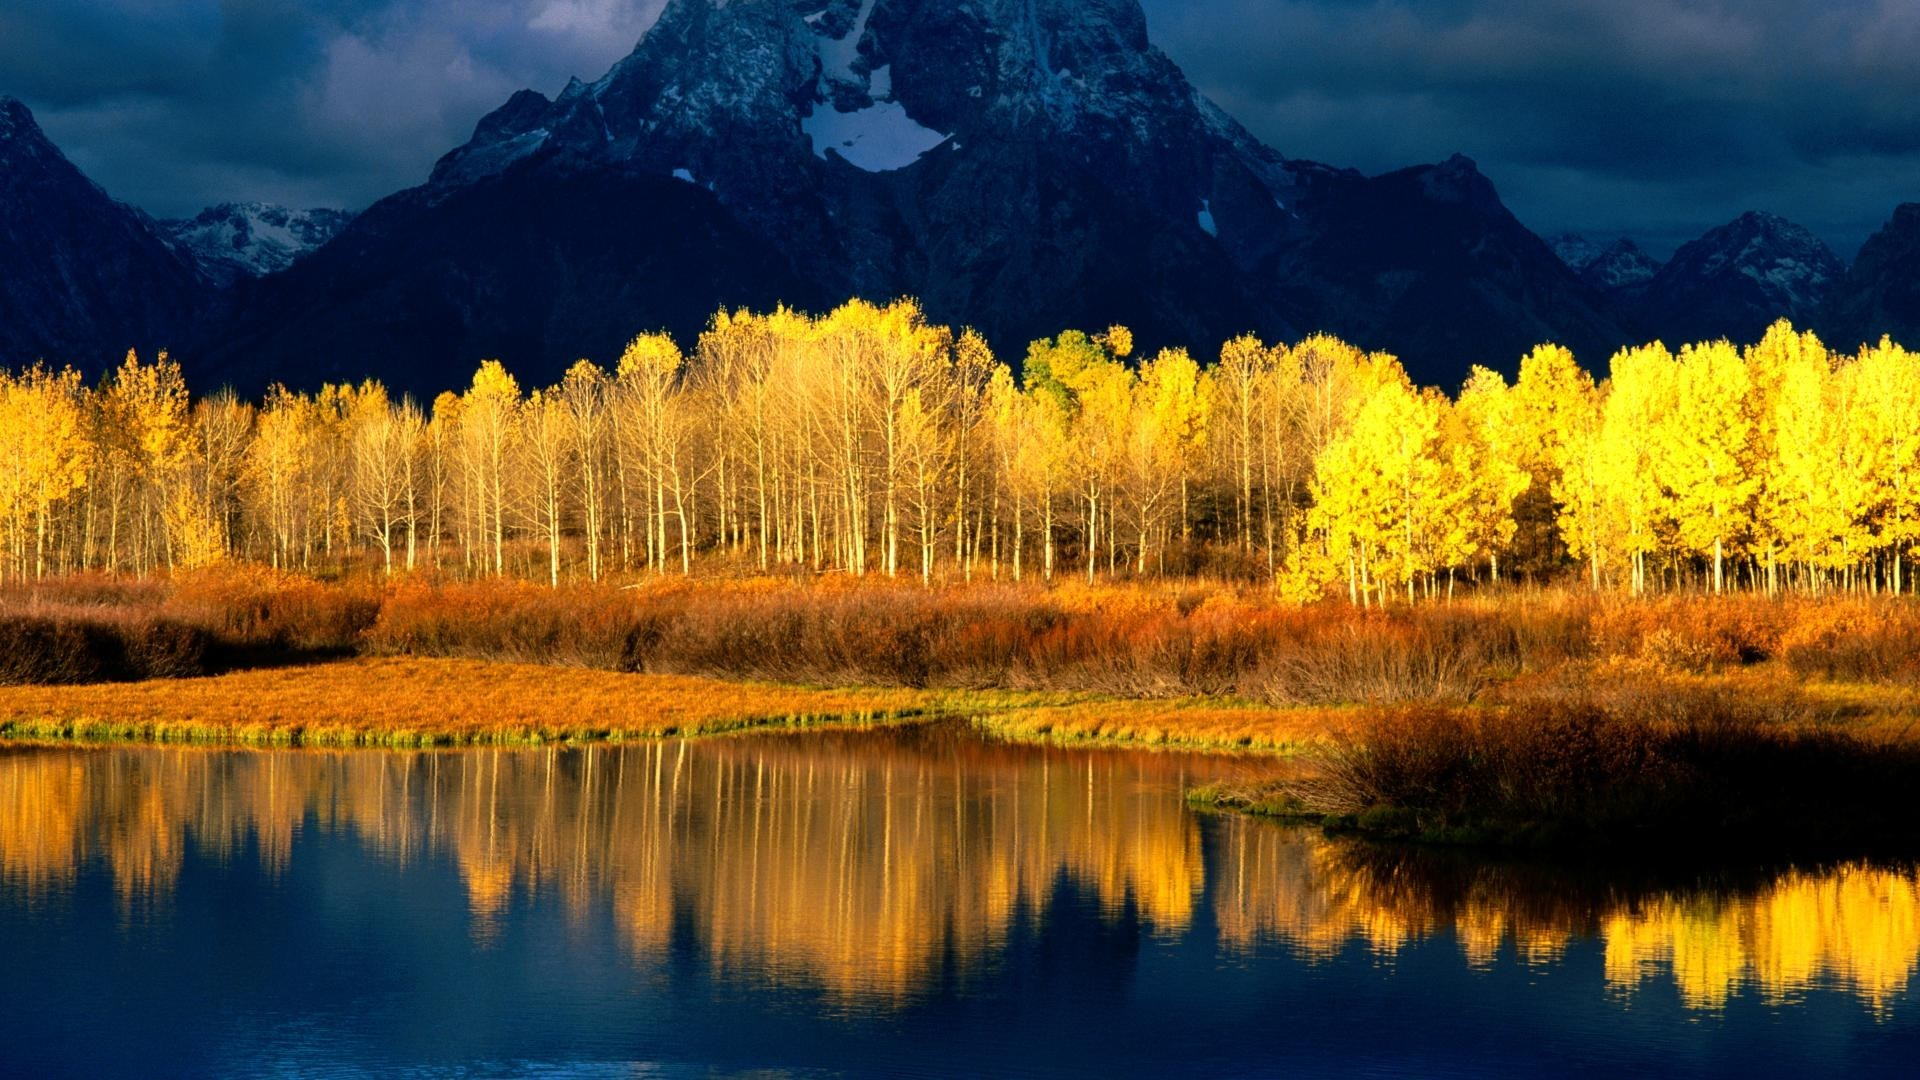 Refelction Clouds Forest Autumn Mountain Sunshine Water Live Wallpaper For  Pc